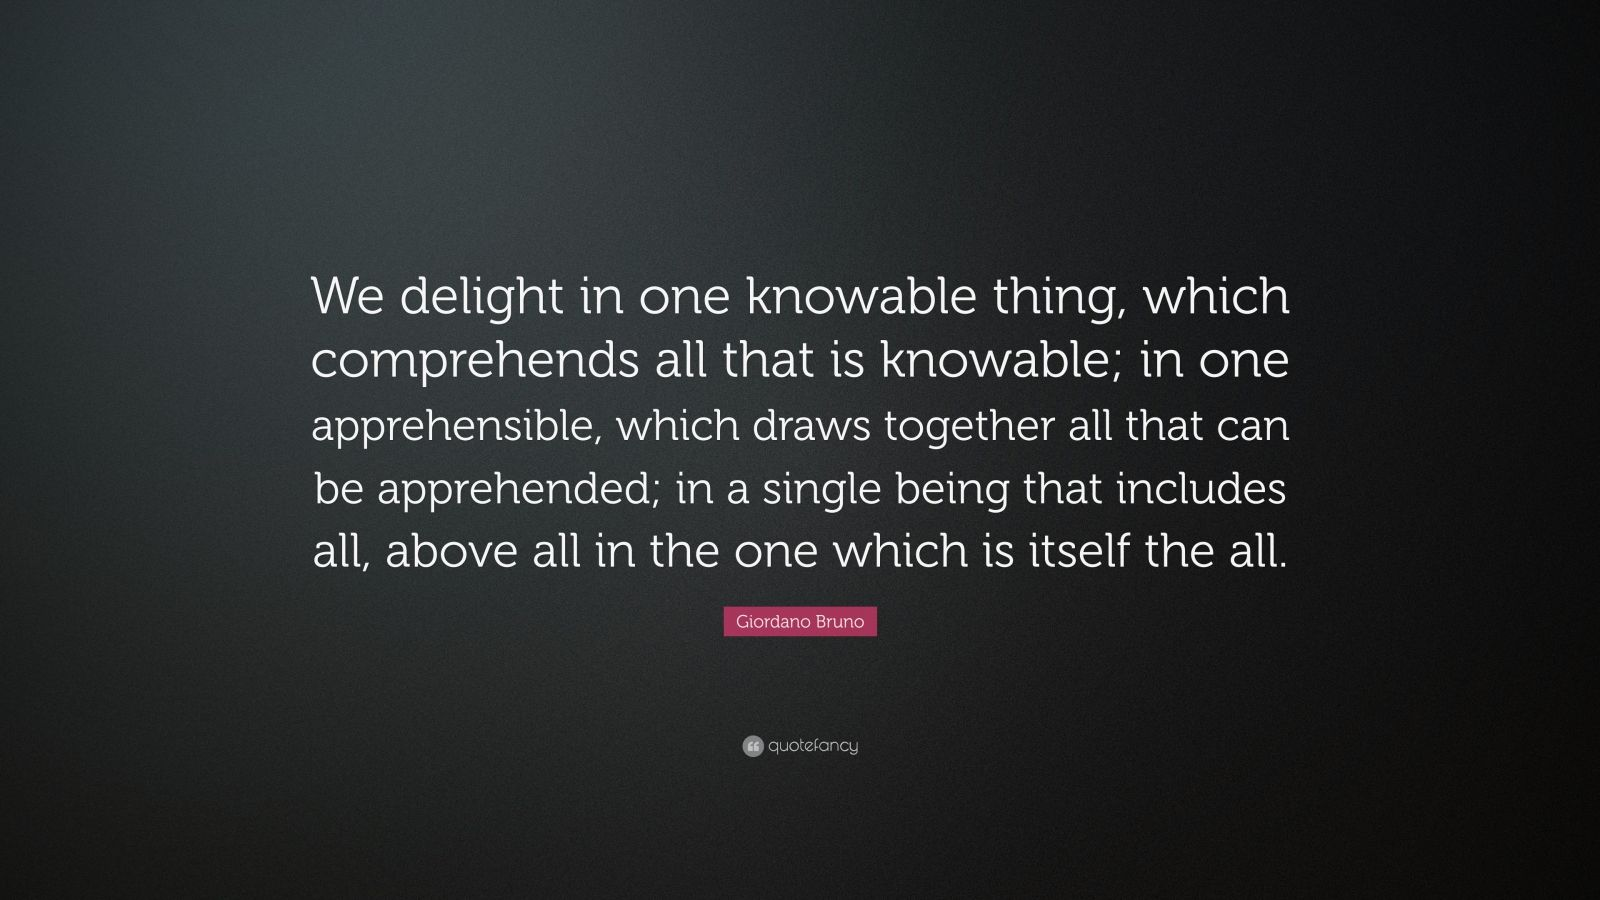 """Giordano Bruno Quote: """"We delight in one knowable thing, which comprehends all that is knowable; in one apprehensible, which draws together all that can be apprehended; in a single being that includes all, above all in the one which is itself the all."""""""